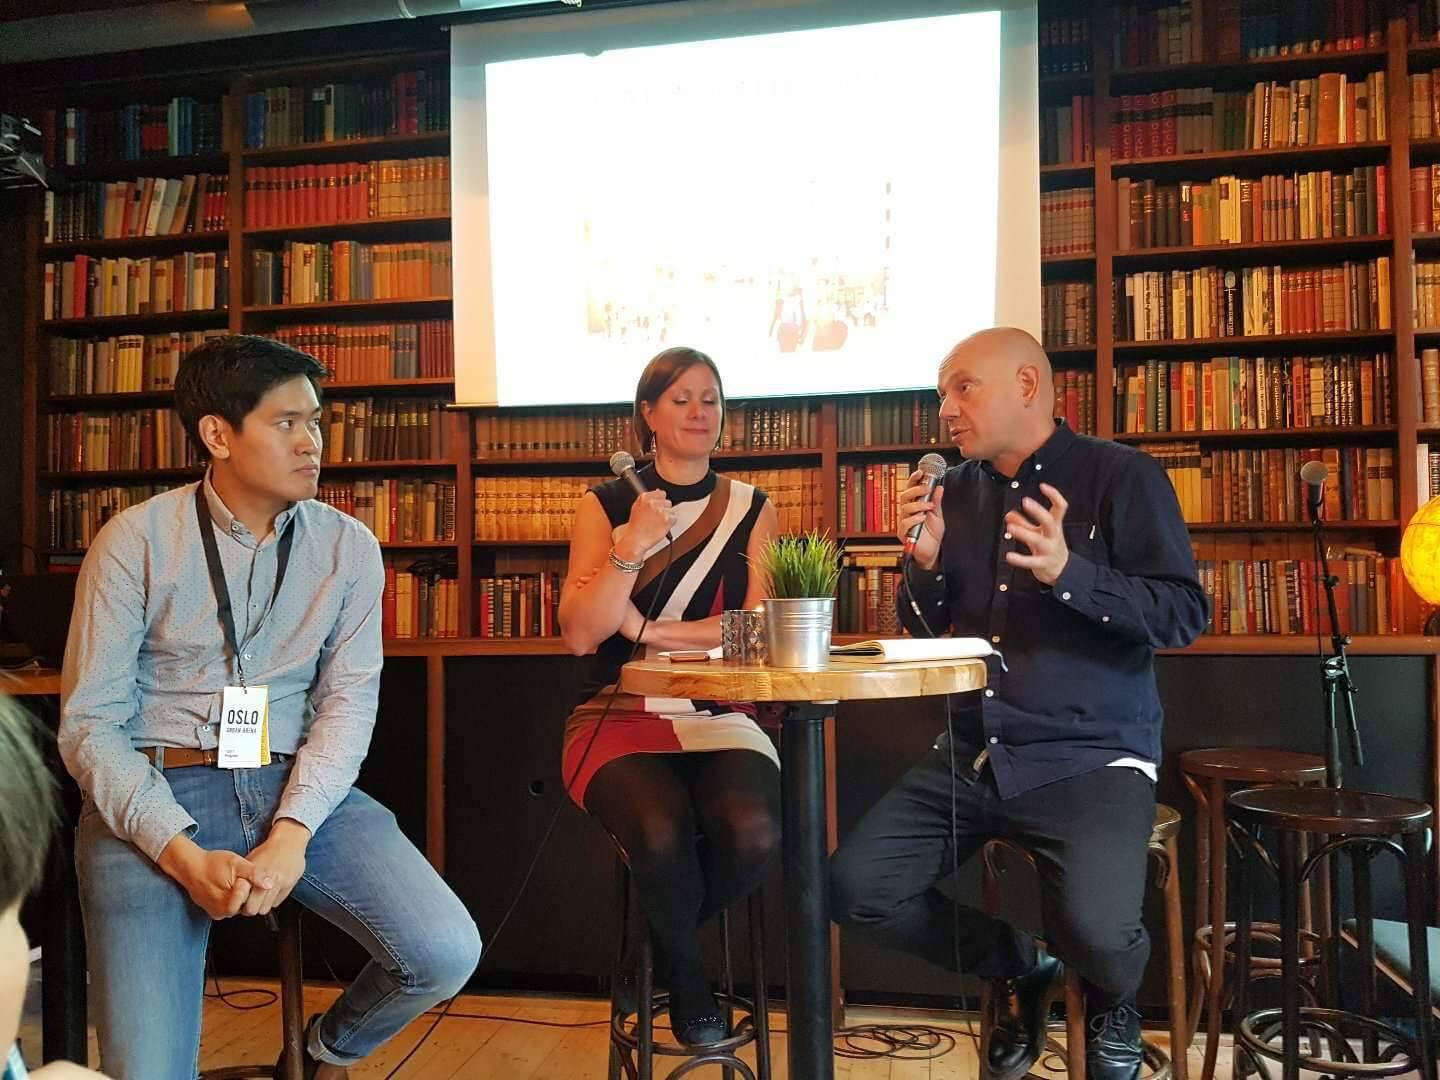 Breakout session at the Oslo Urban Arena 2017 - 20.09.2017 - Library at Kulturhuset, Oslo - As part of the break-out sessions, we are presenting,